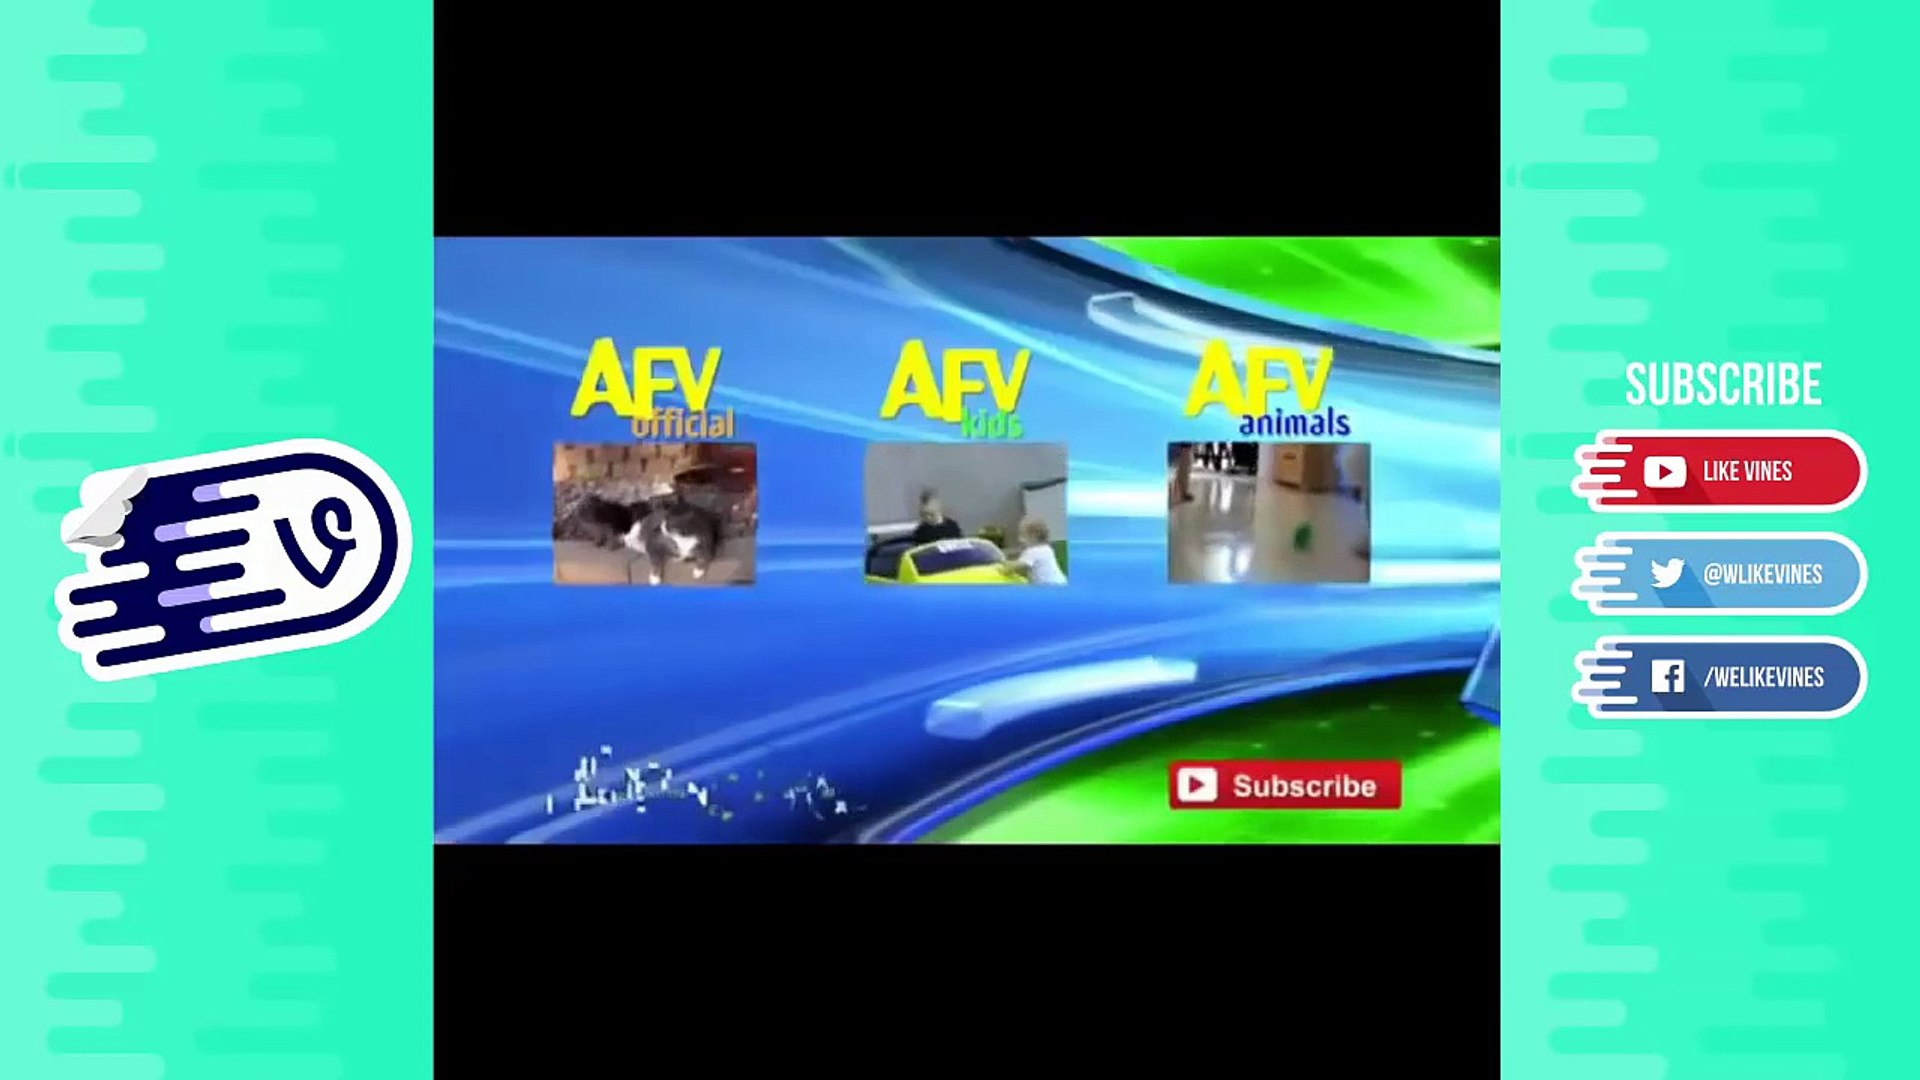 Funny Cute Cat Videos August (Part 1) 2016 - Cute Cats and Dogs Videos